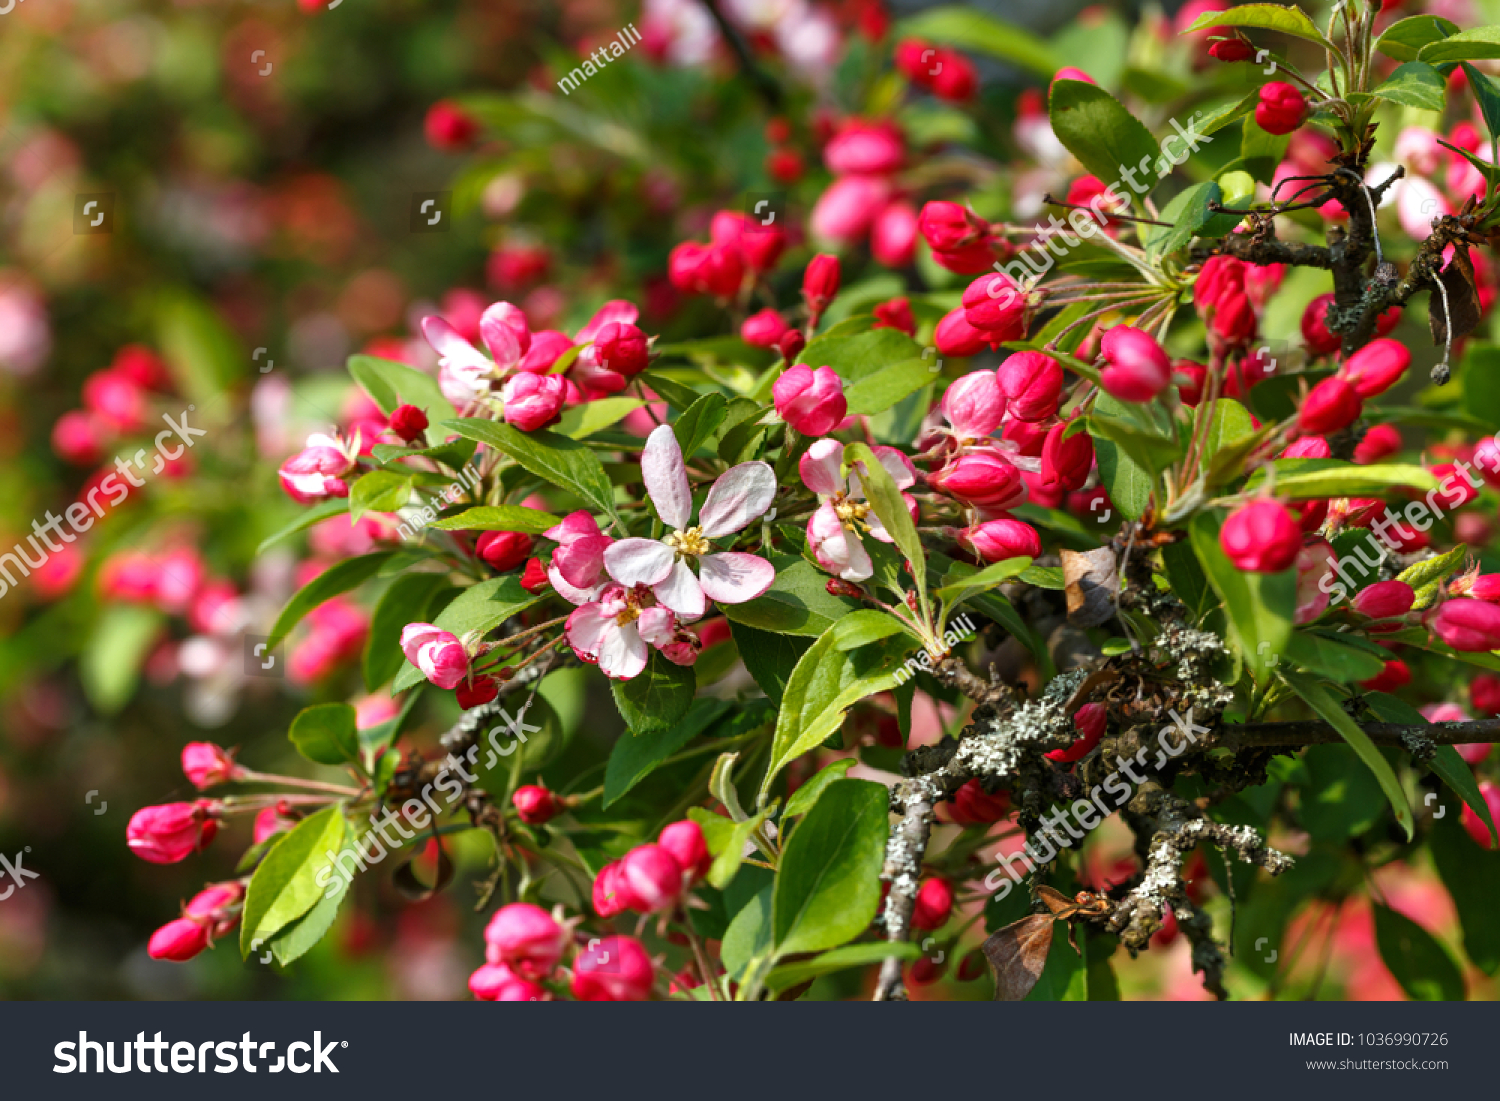 Pink flowers bud wild apple tree stock photo edit now 1036990726 pink flowers and bud of wild apple tree spring background with apple tree blossom mightylinksfo